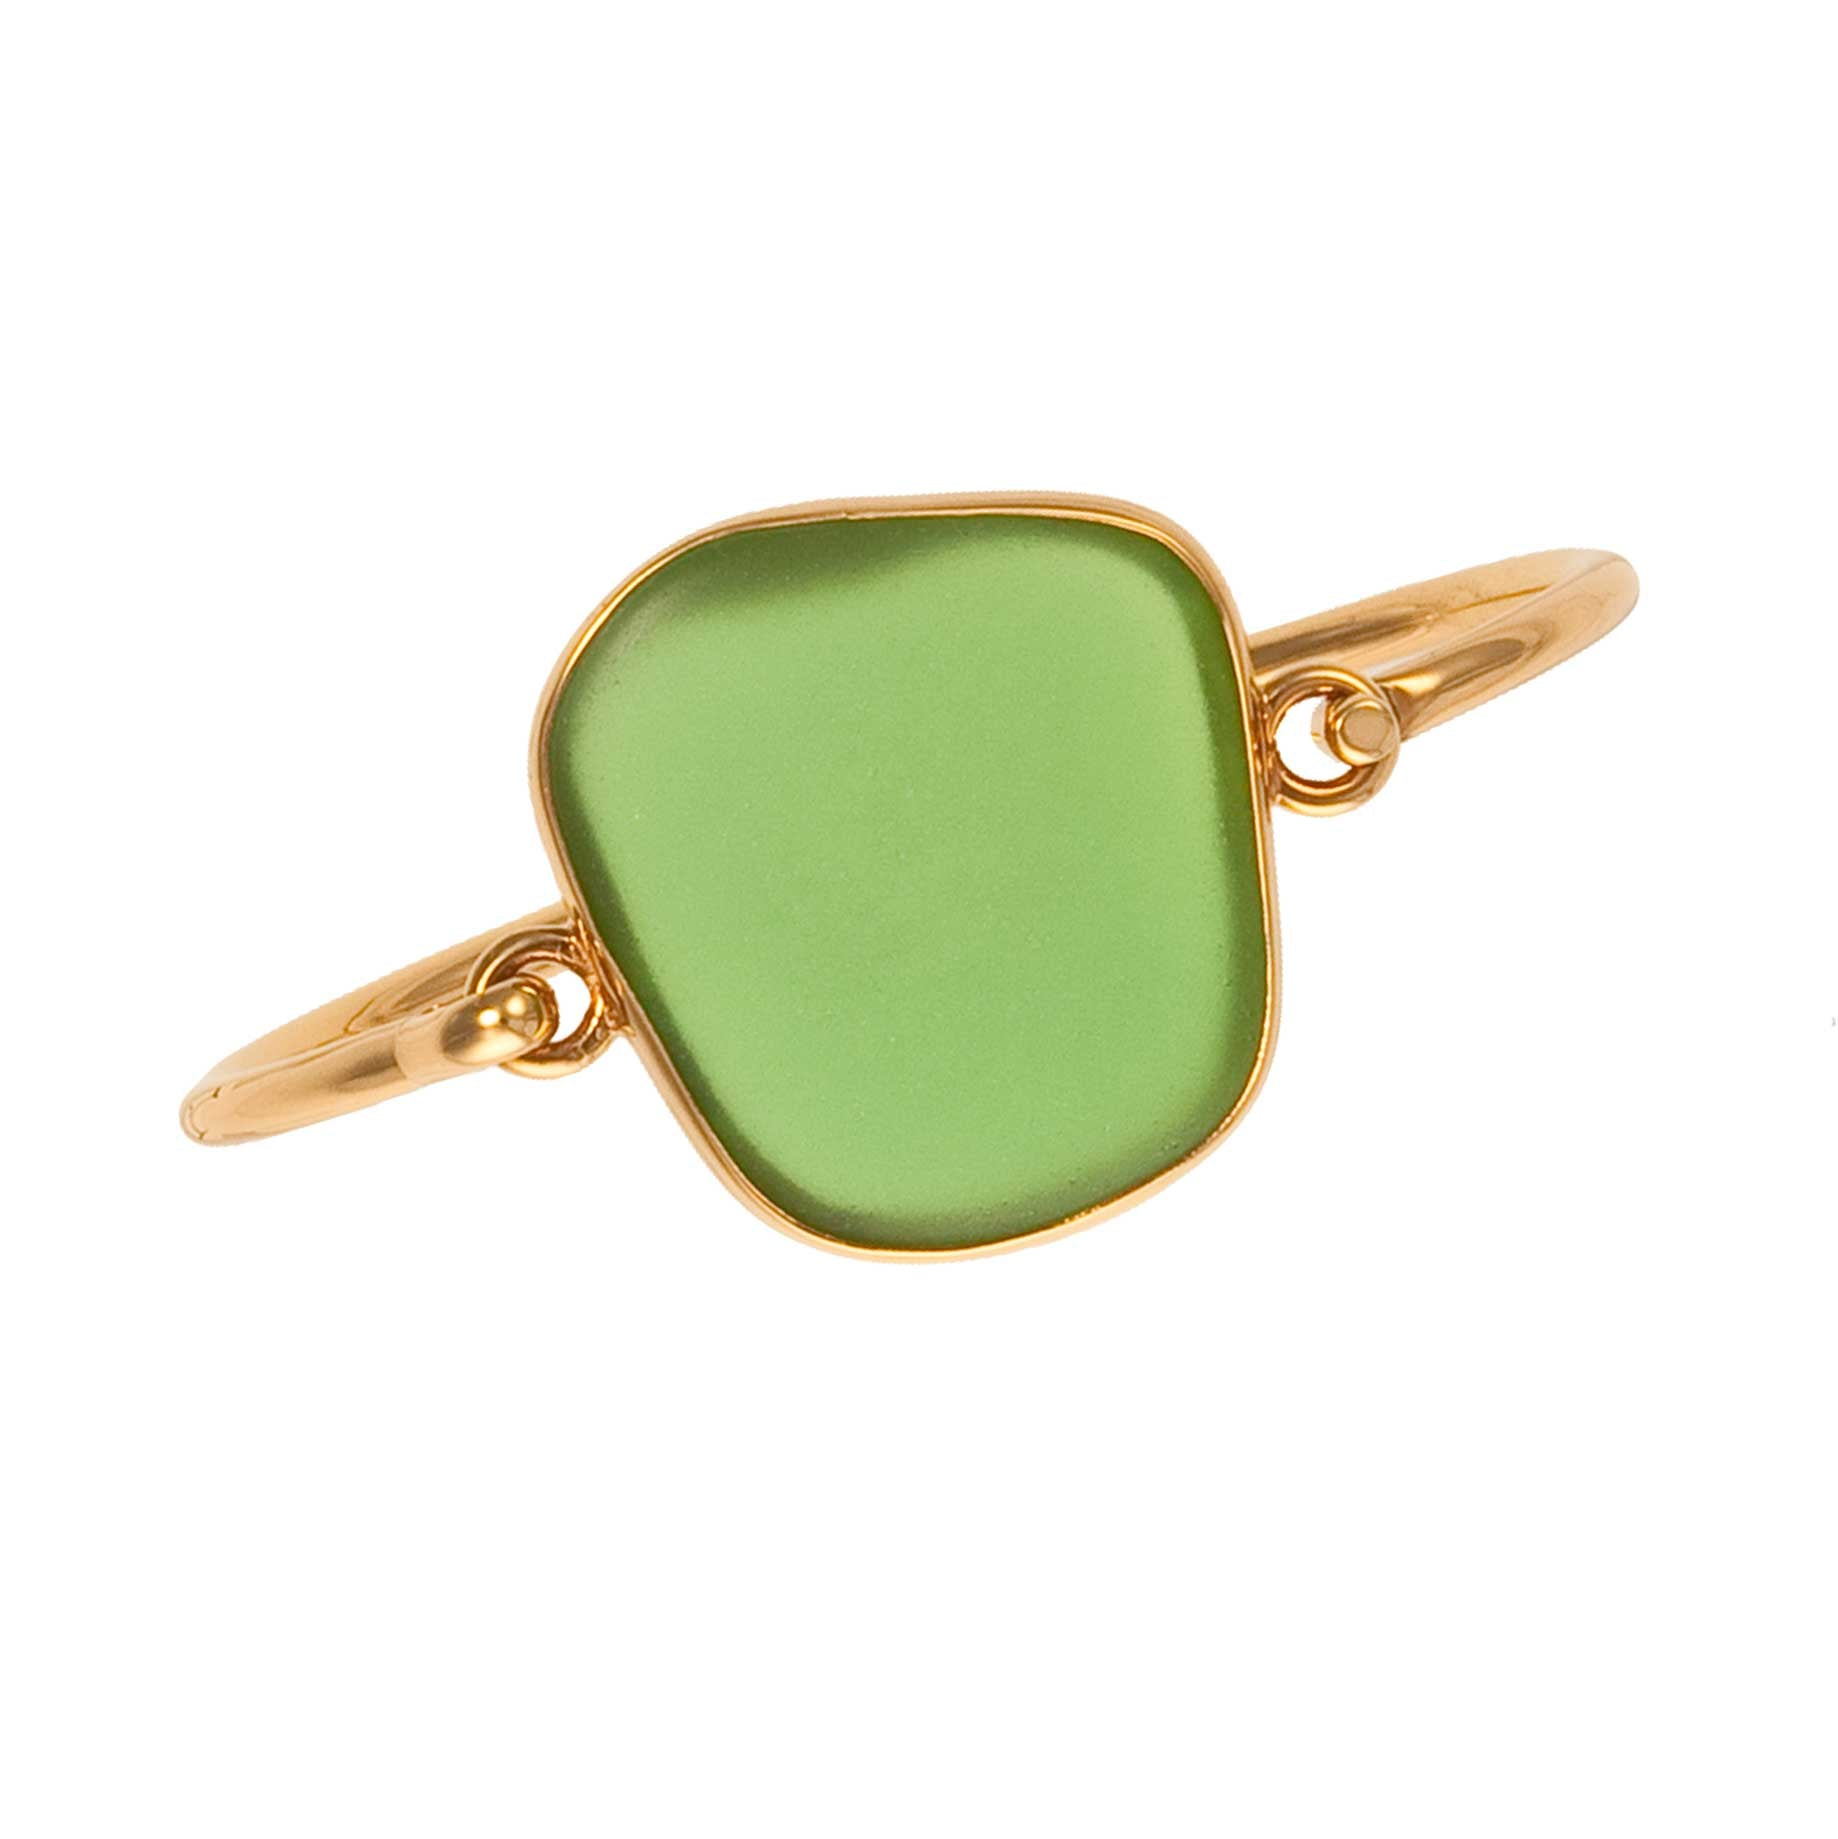 Alchemia Green Recycled Glass Bangle | Charles Albert Jewelry